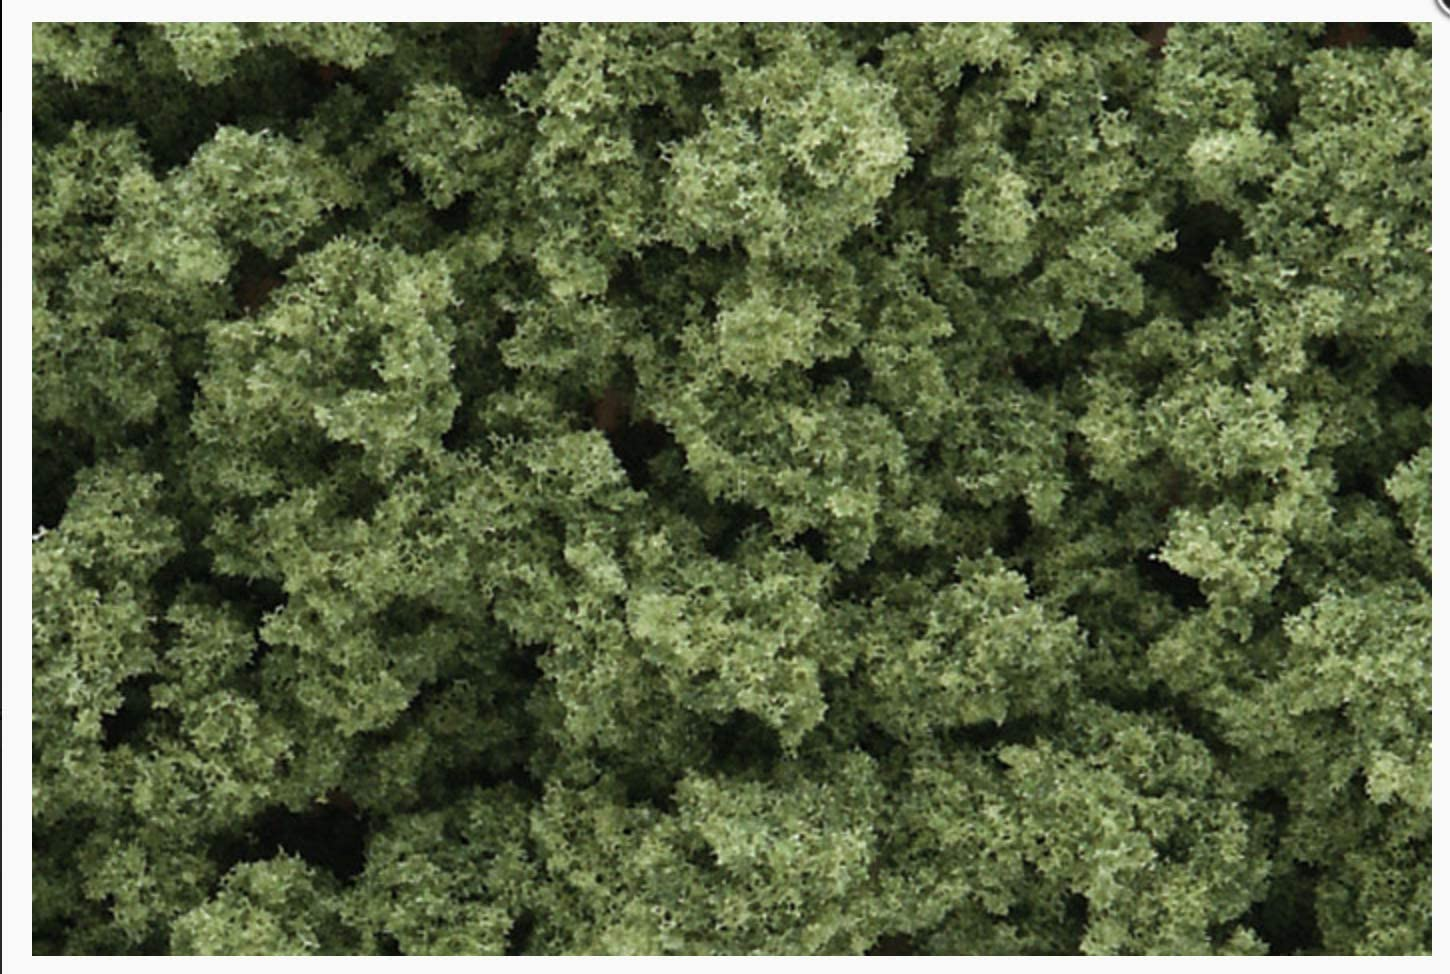 OO//HO busches Woodland Scenics FC1644 Shaker Olive Green Bushes